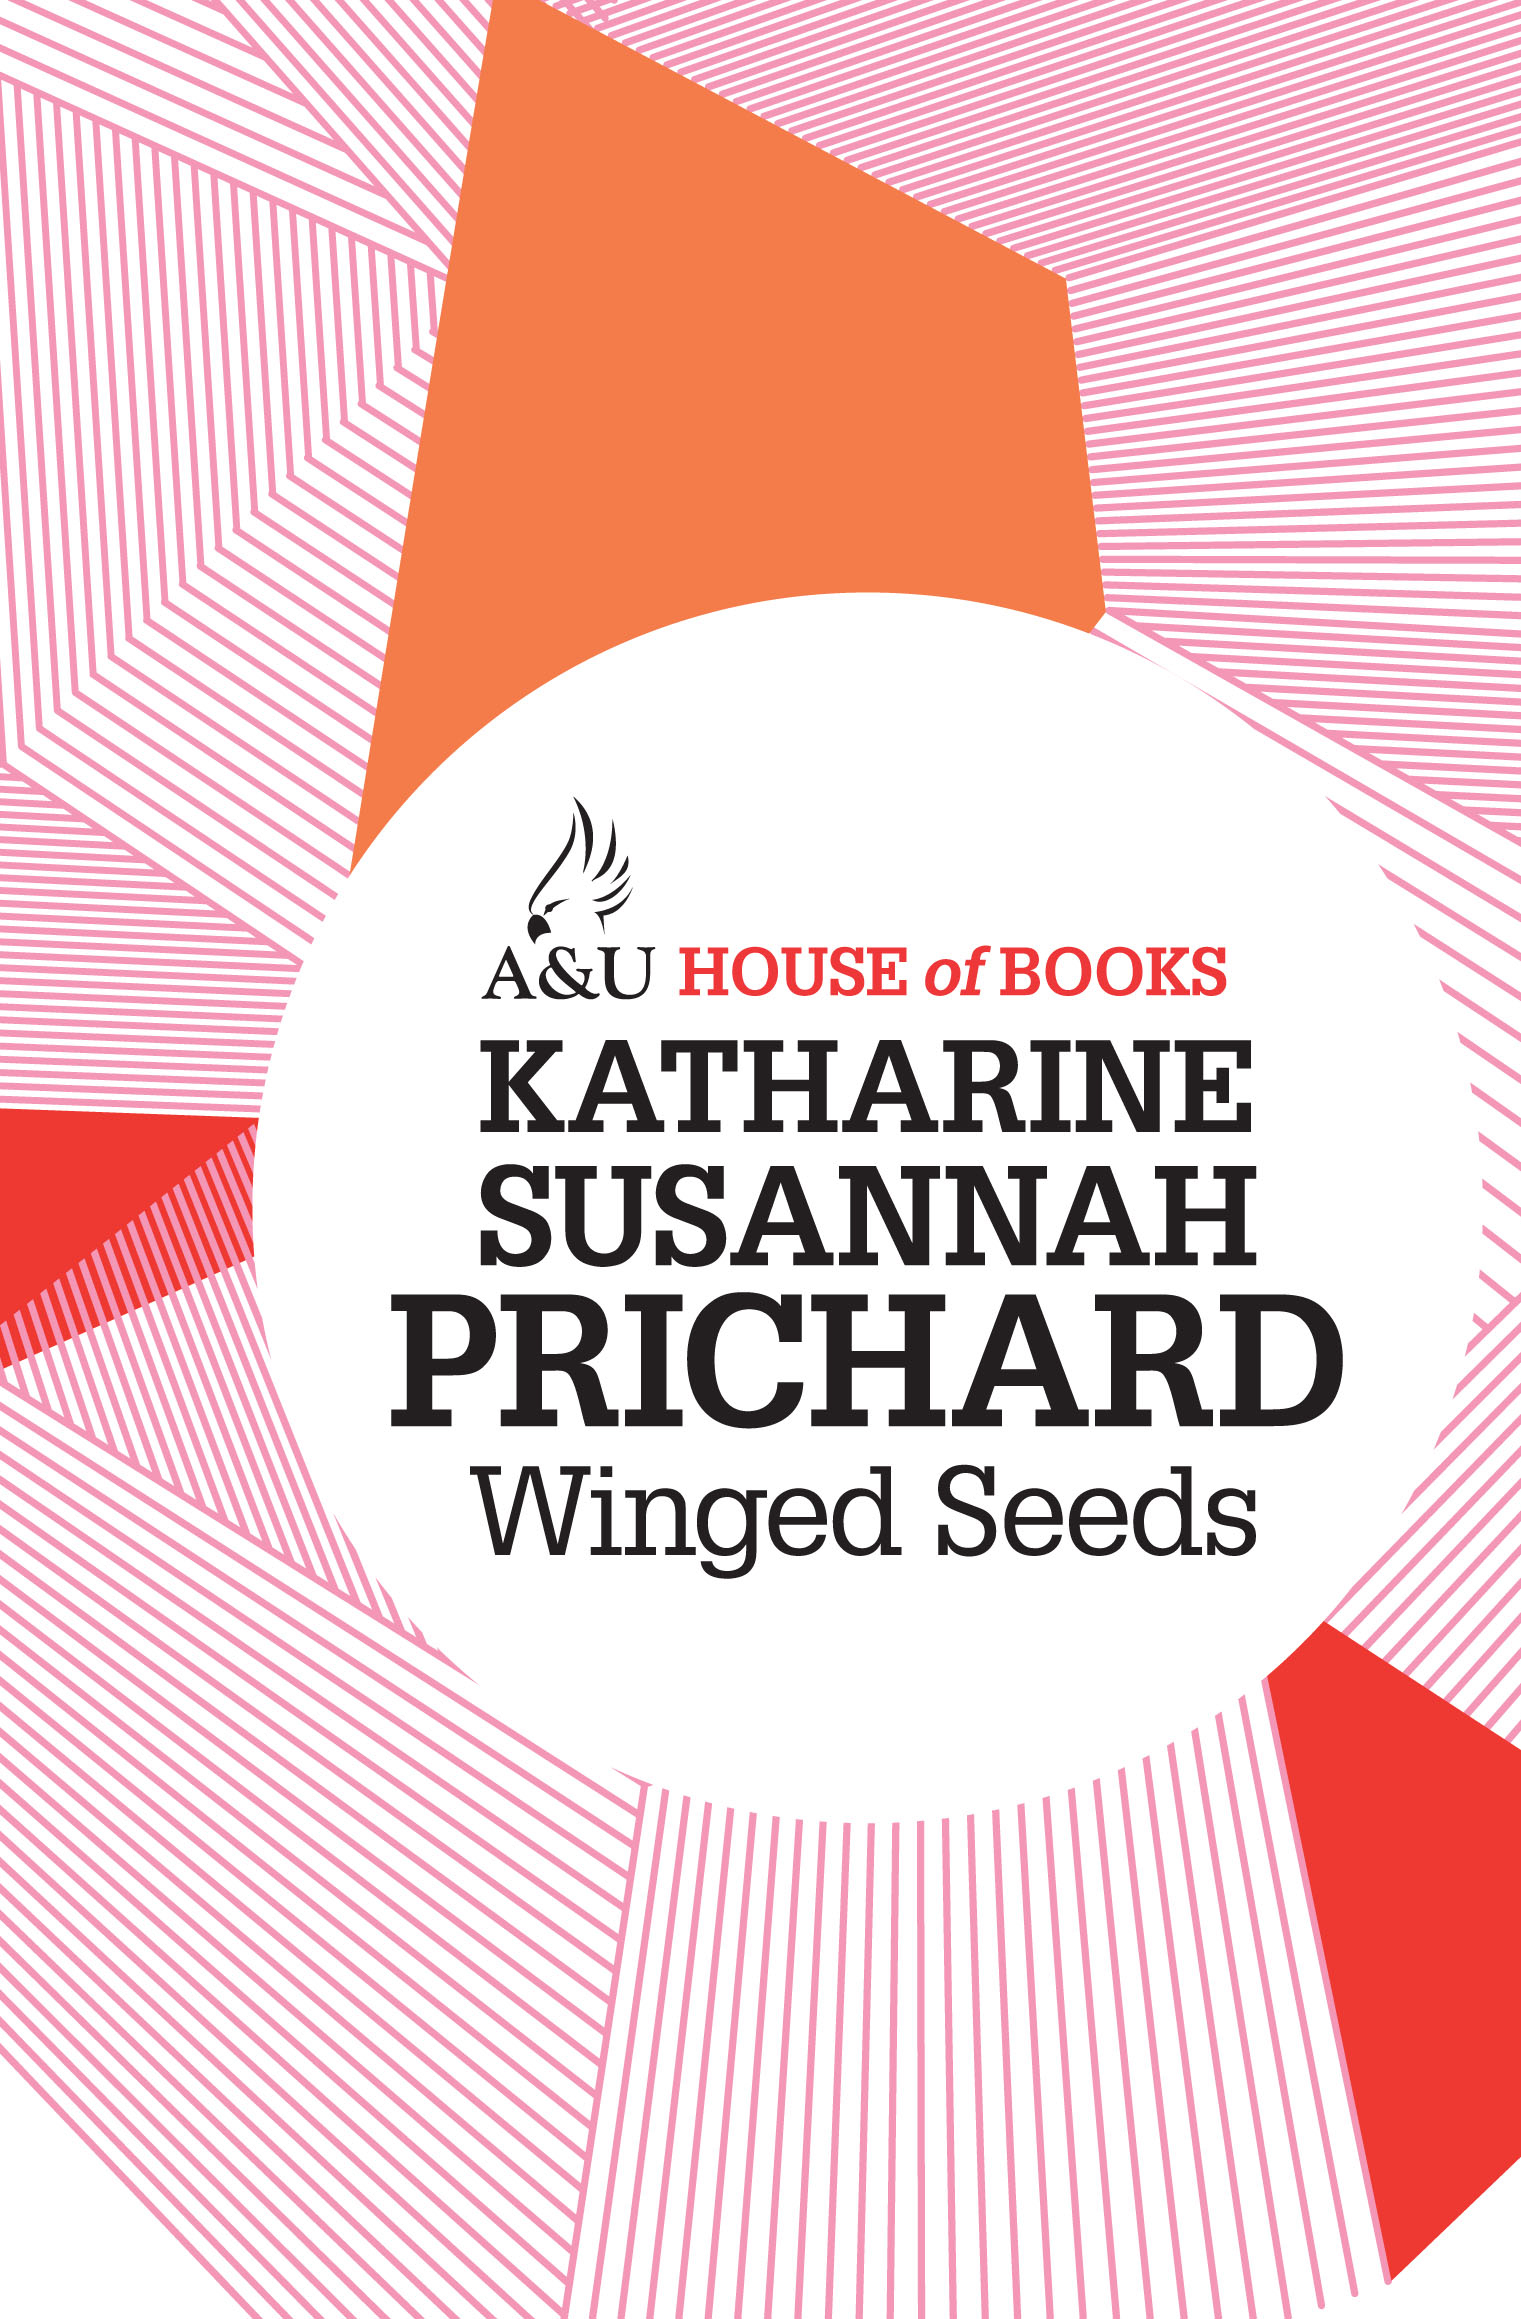 Winged Seeds by Katharine Susannah Prichard, ISBN: 9781743312063